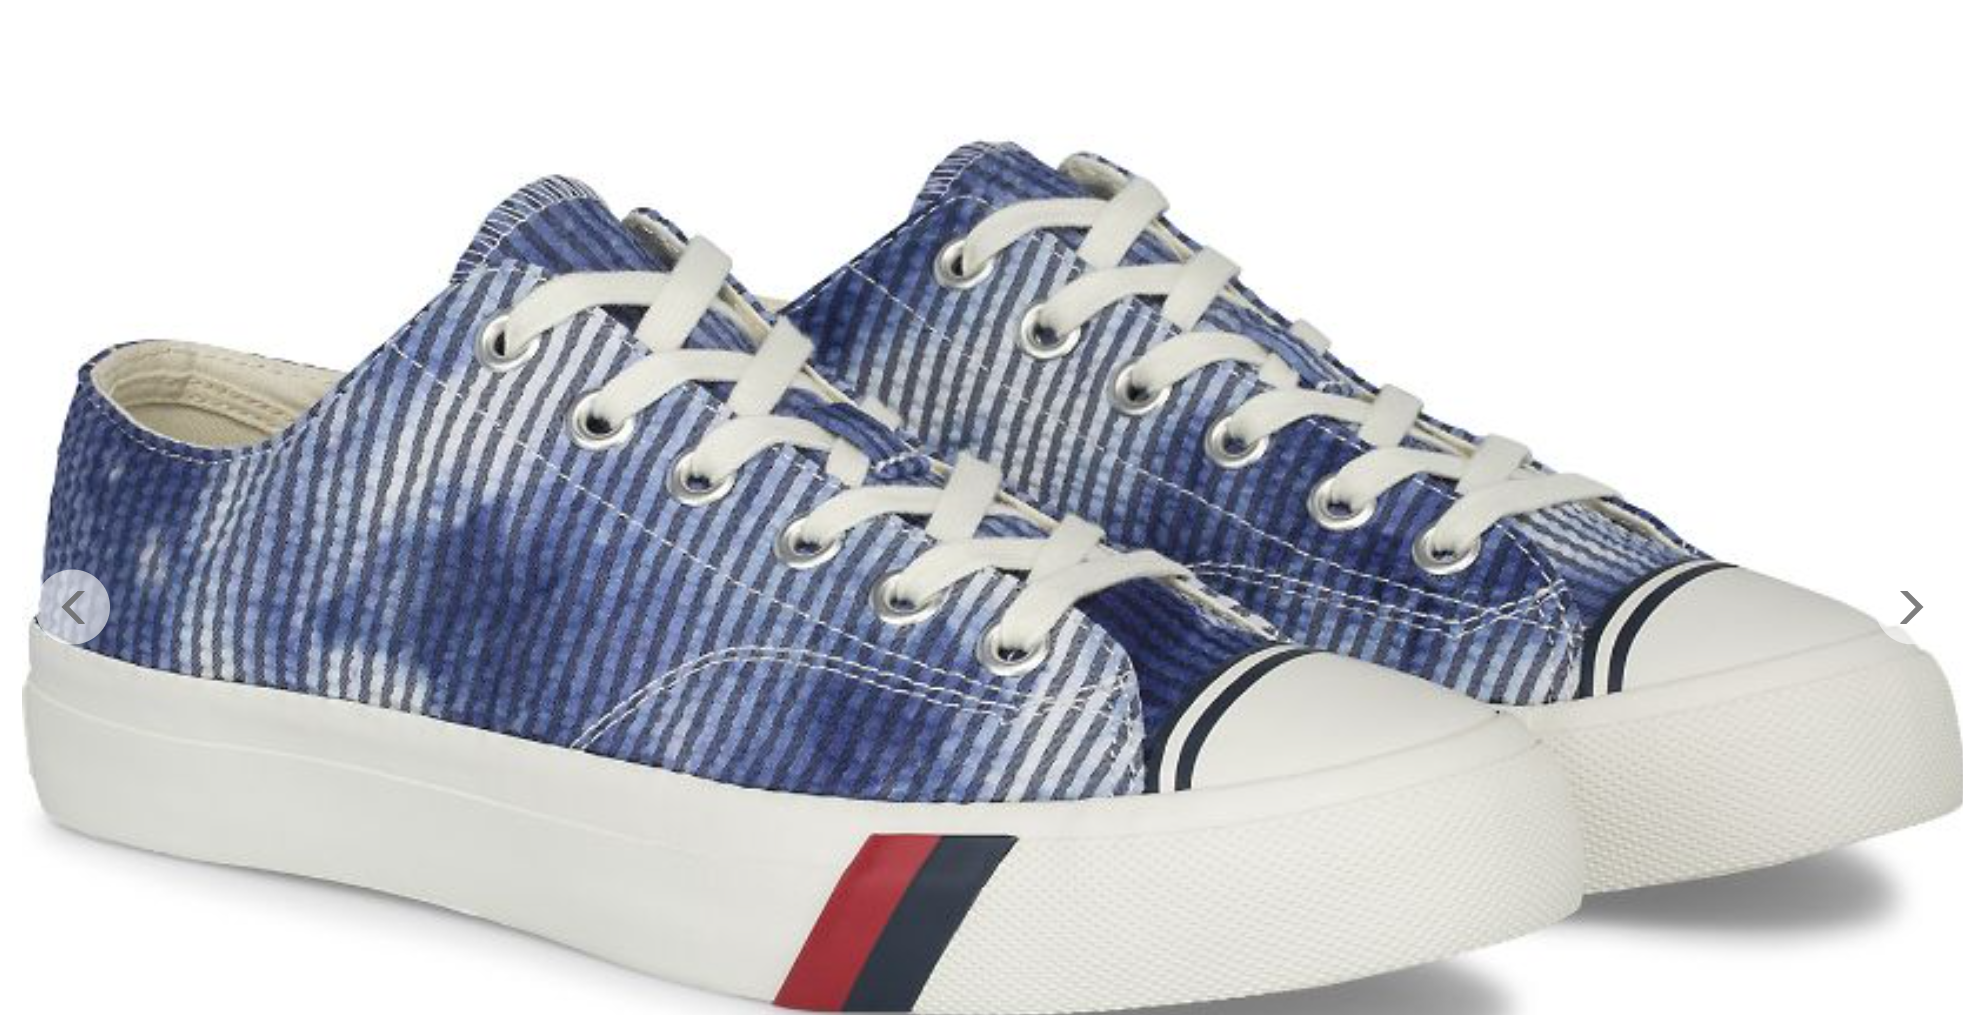 Prokeds: Extra 15% off sitewide